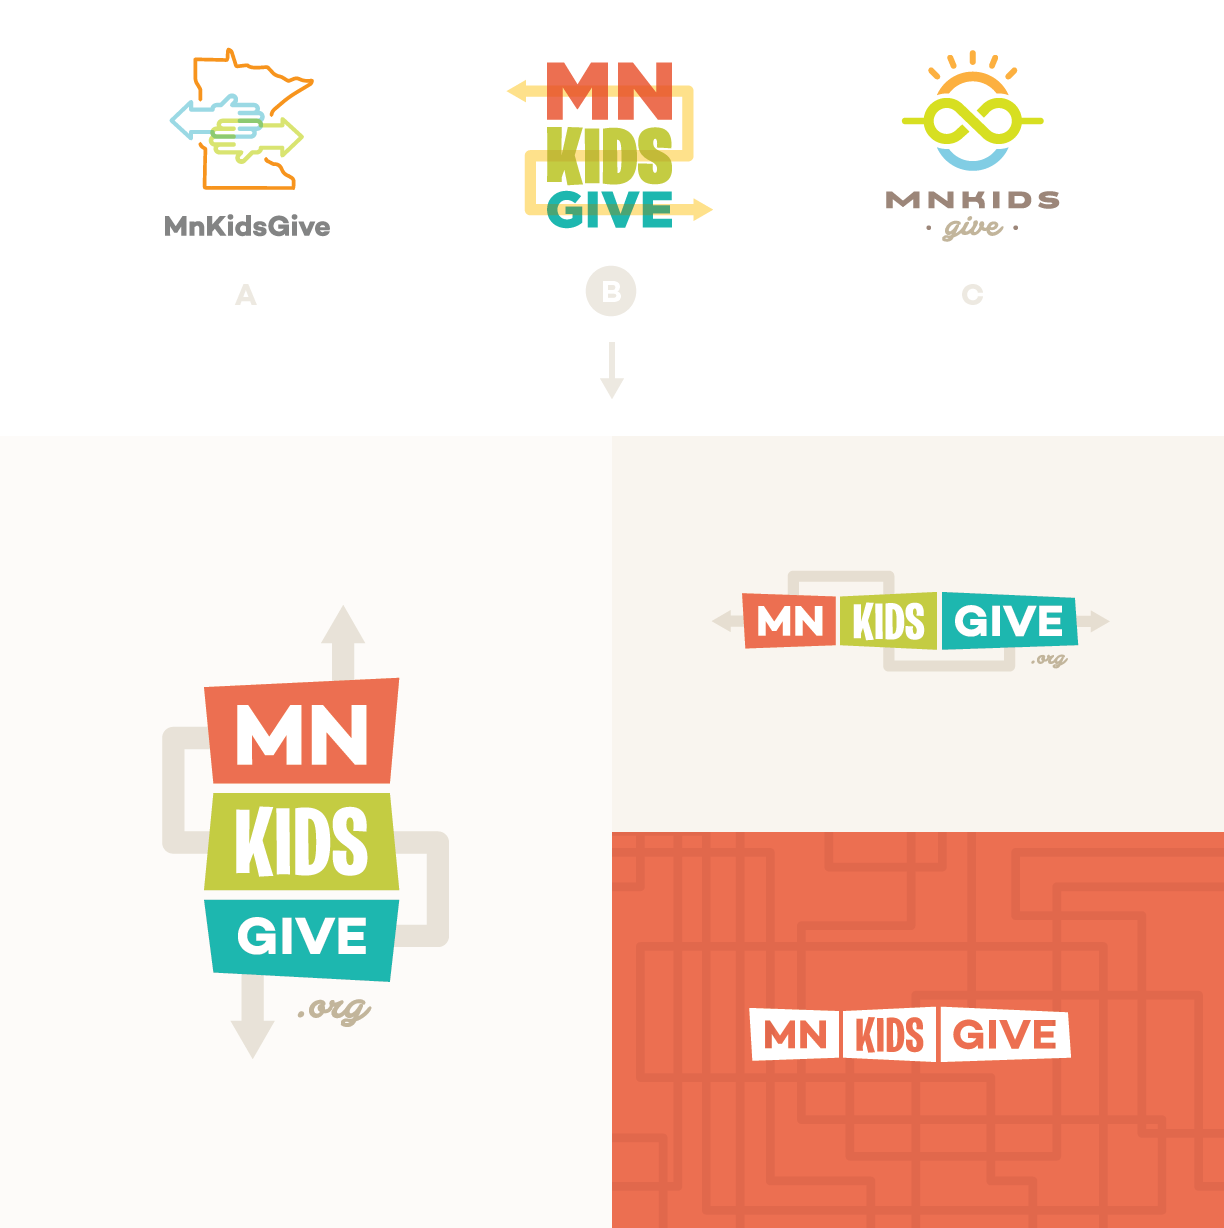 mnkidsgive_final_lockups-01.png